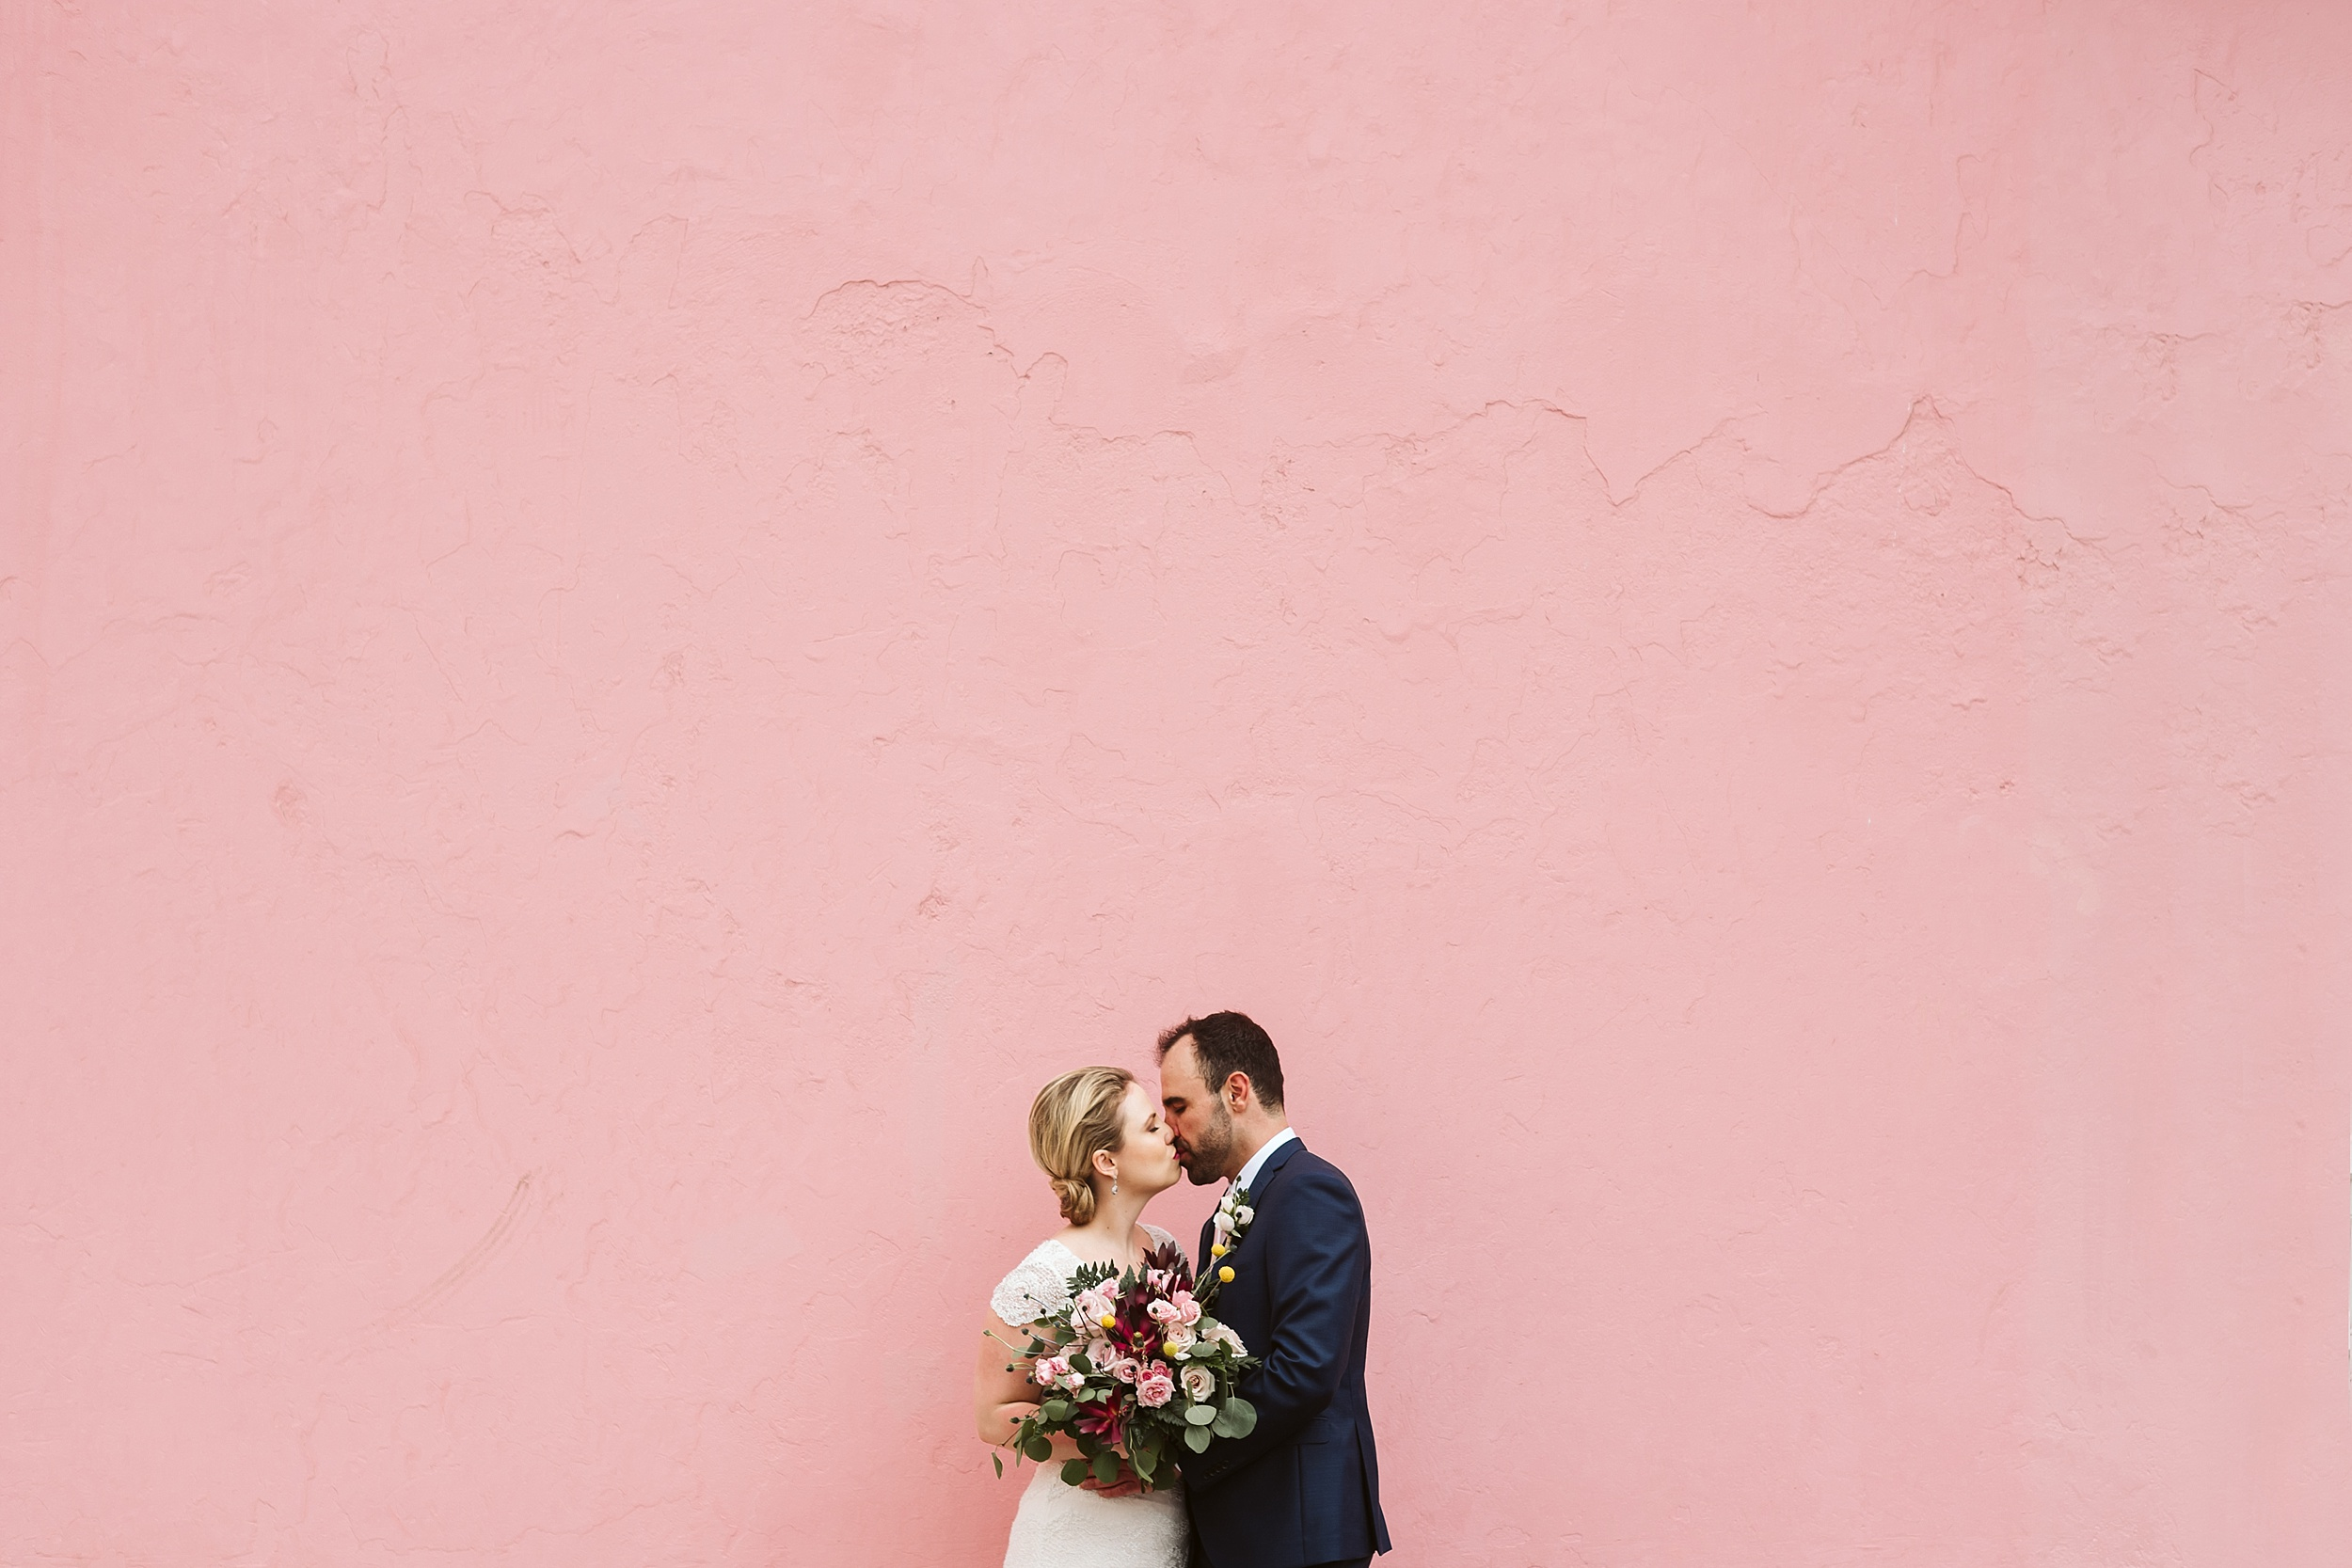 """Sarah & Scott - """"I honestly can't recommend Michelle and Dan enough. They are wonderful people to work with, professional, creative and easy to get along with. They take stunning photos and make everyone look their best in every photo. You are missing out if you don't go with Michelle and Dan!!!!!!!!!"""" - Sarah & Scott"""